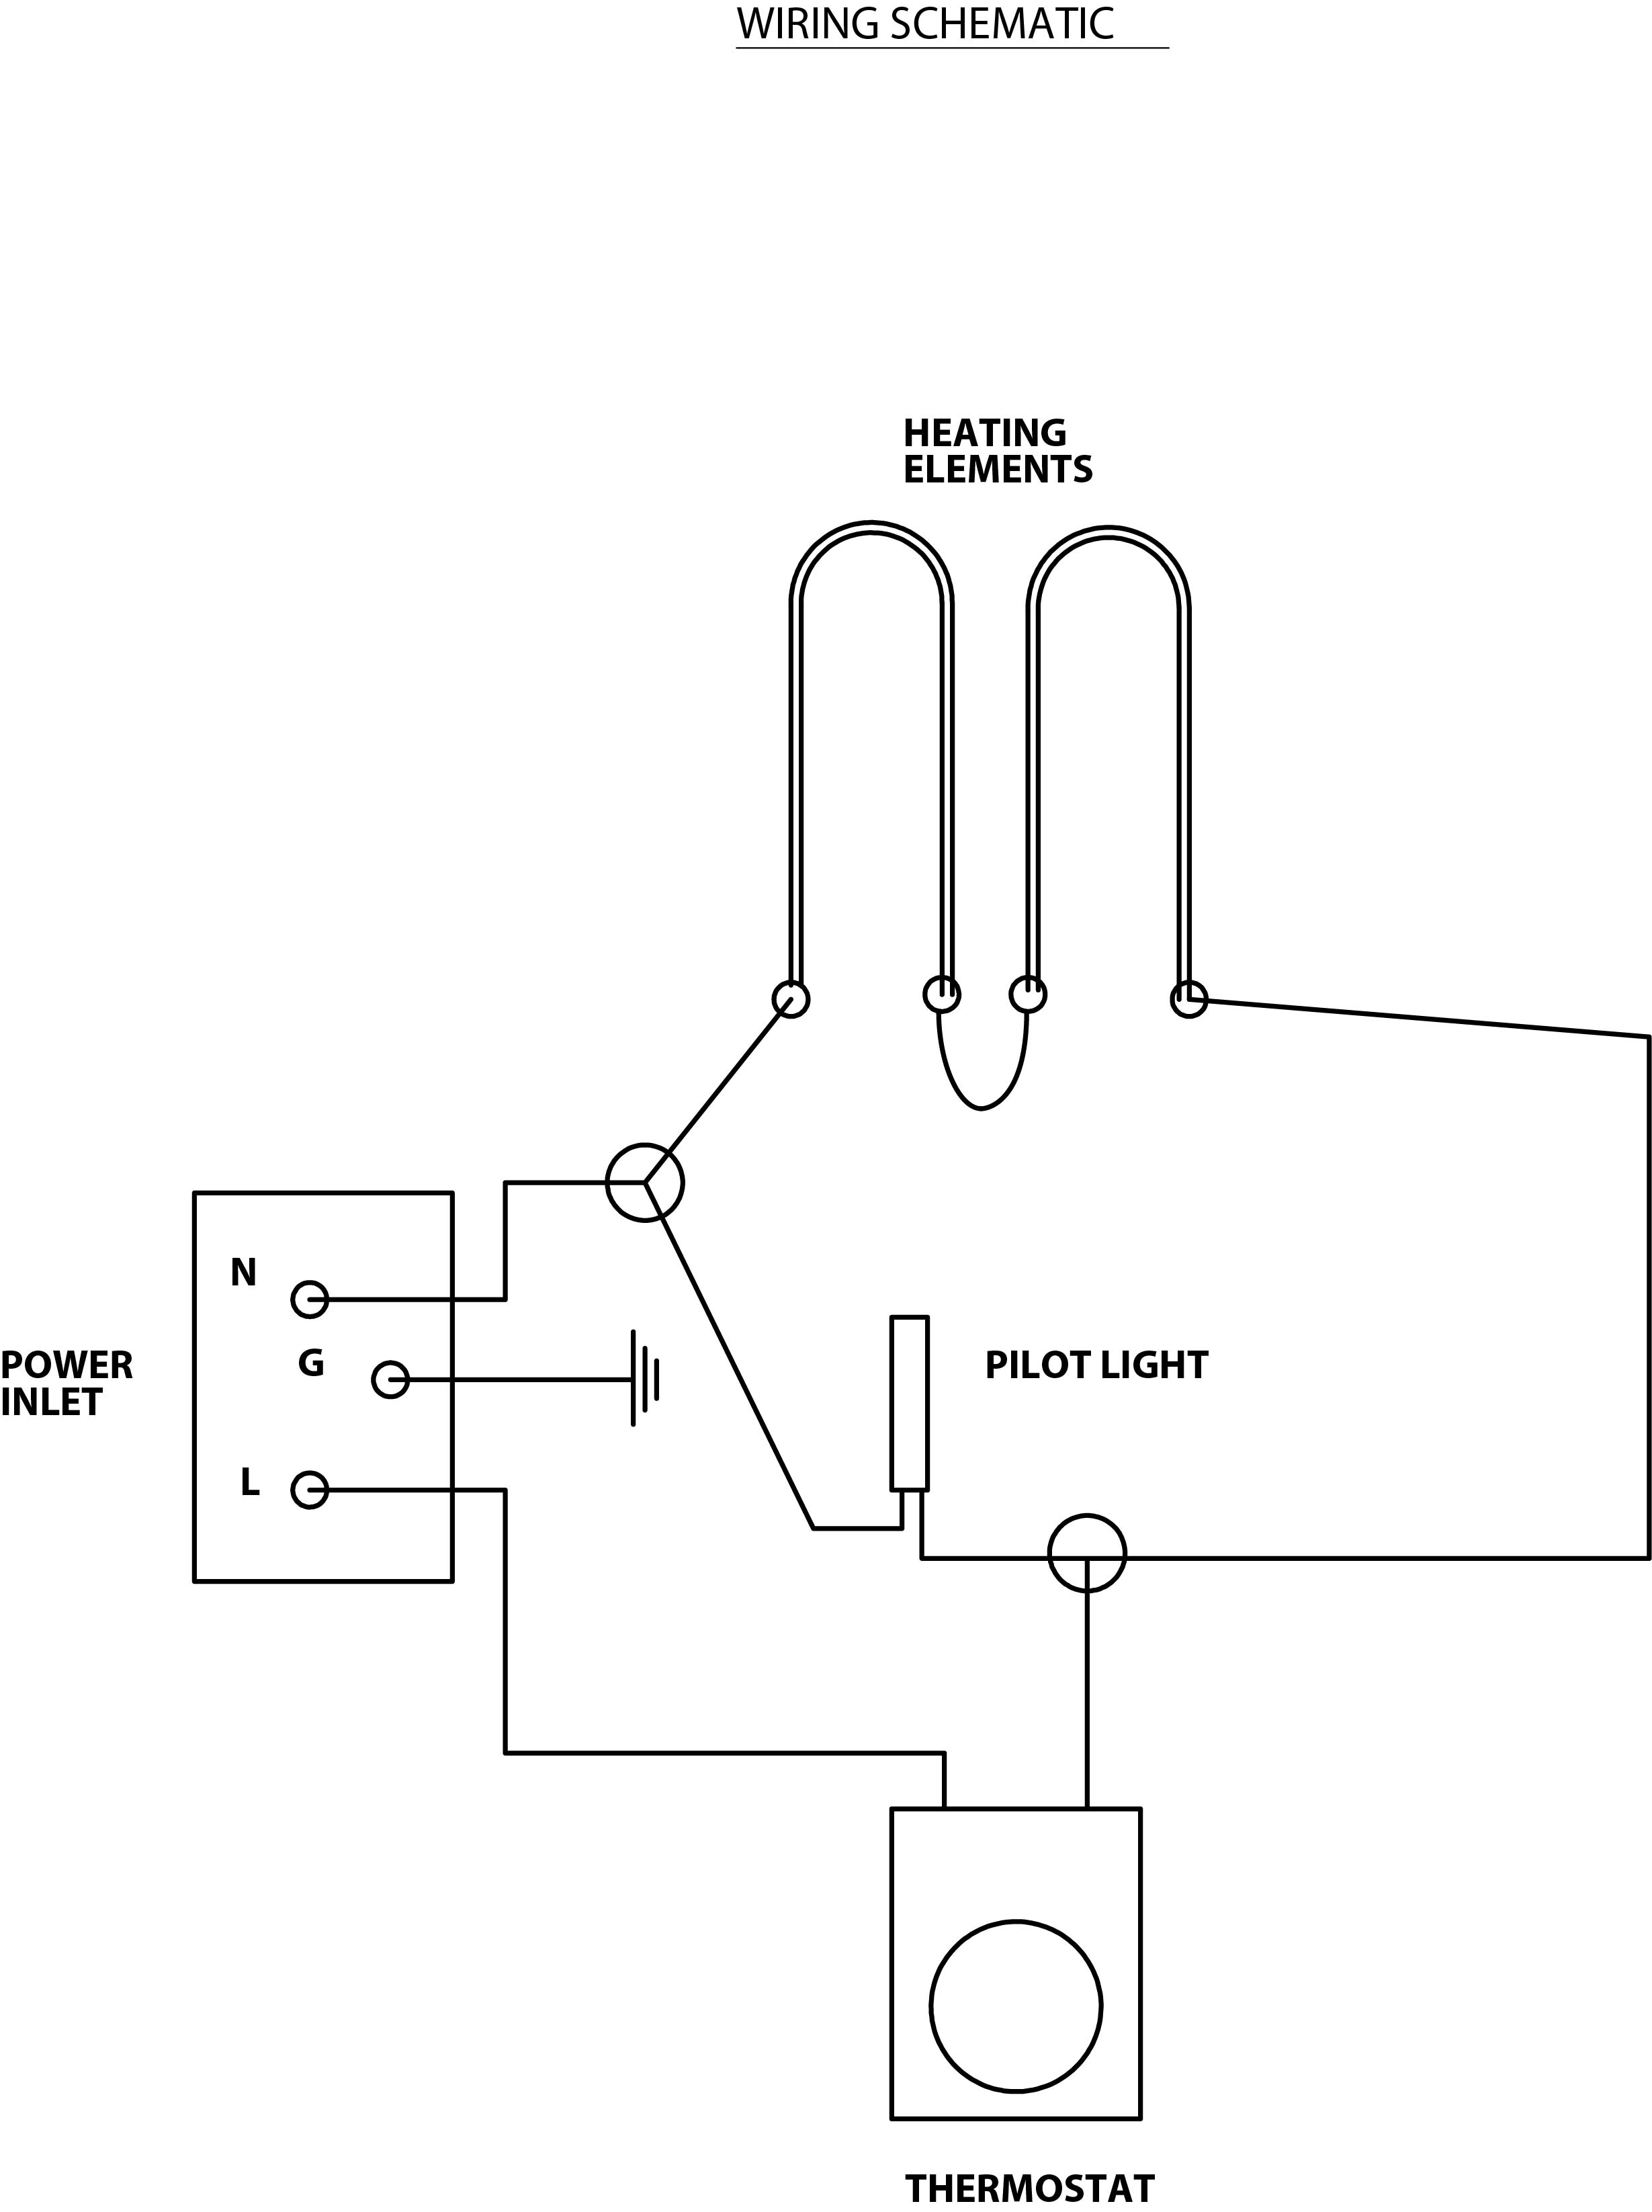 three phase heater wiring diagram wiring library 3 Phase Wiring Schematic 3 phase thermostat diagram 26 wiring diagram images